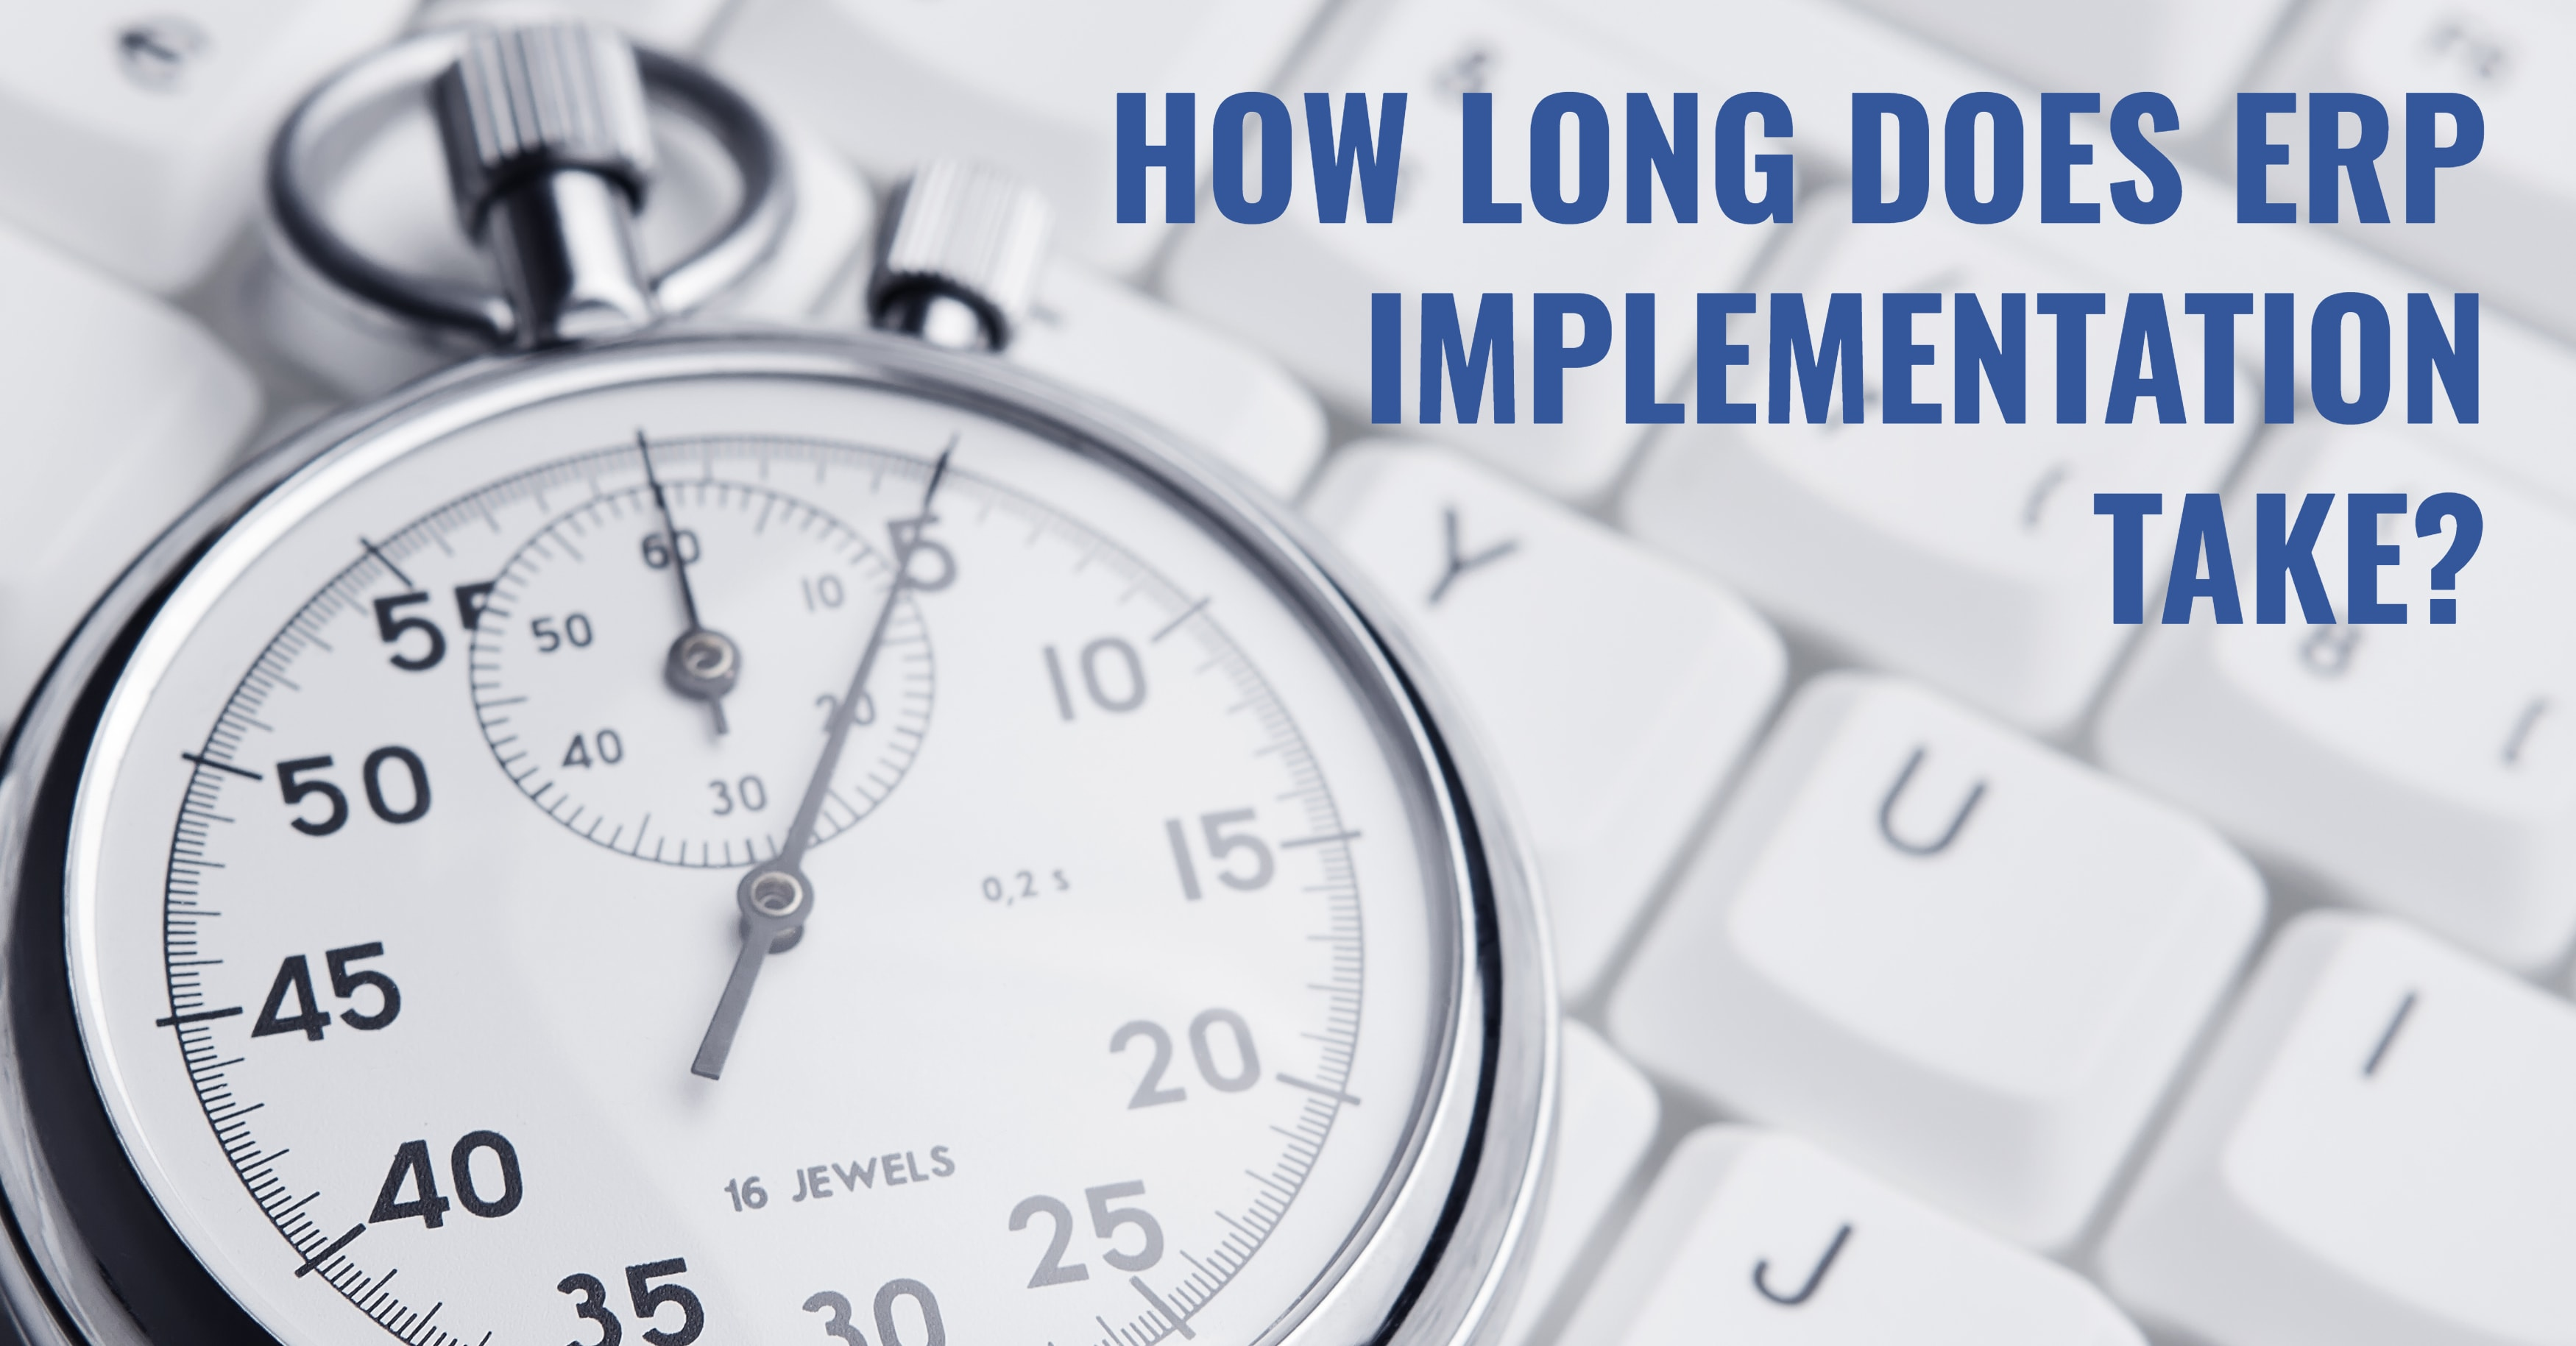 How Long Does ERP Implementation Take?